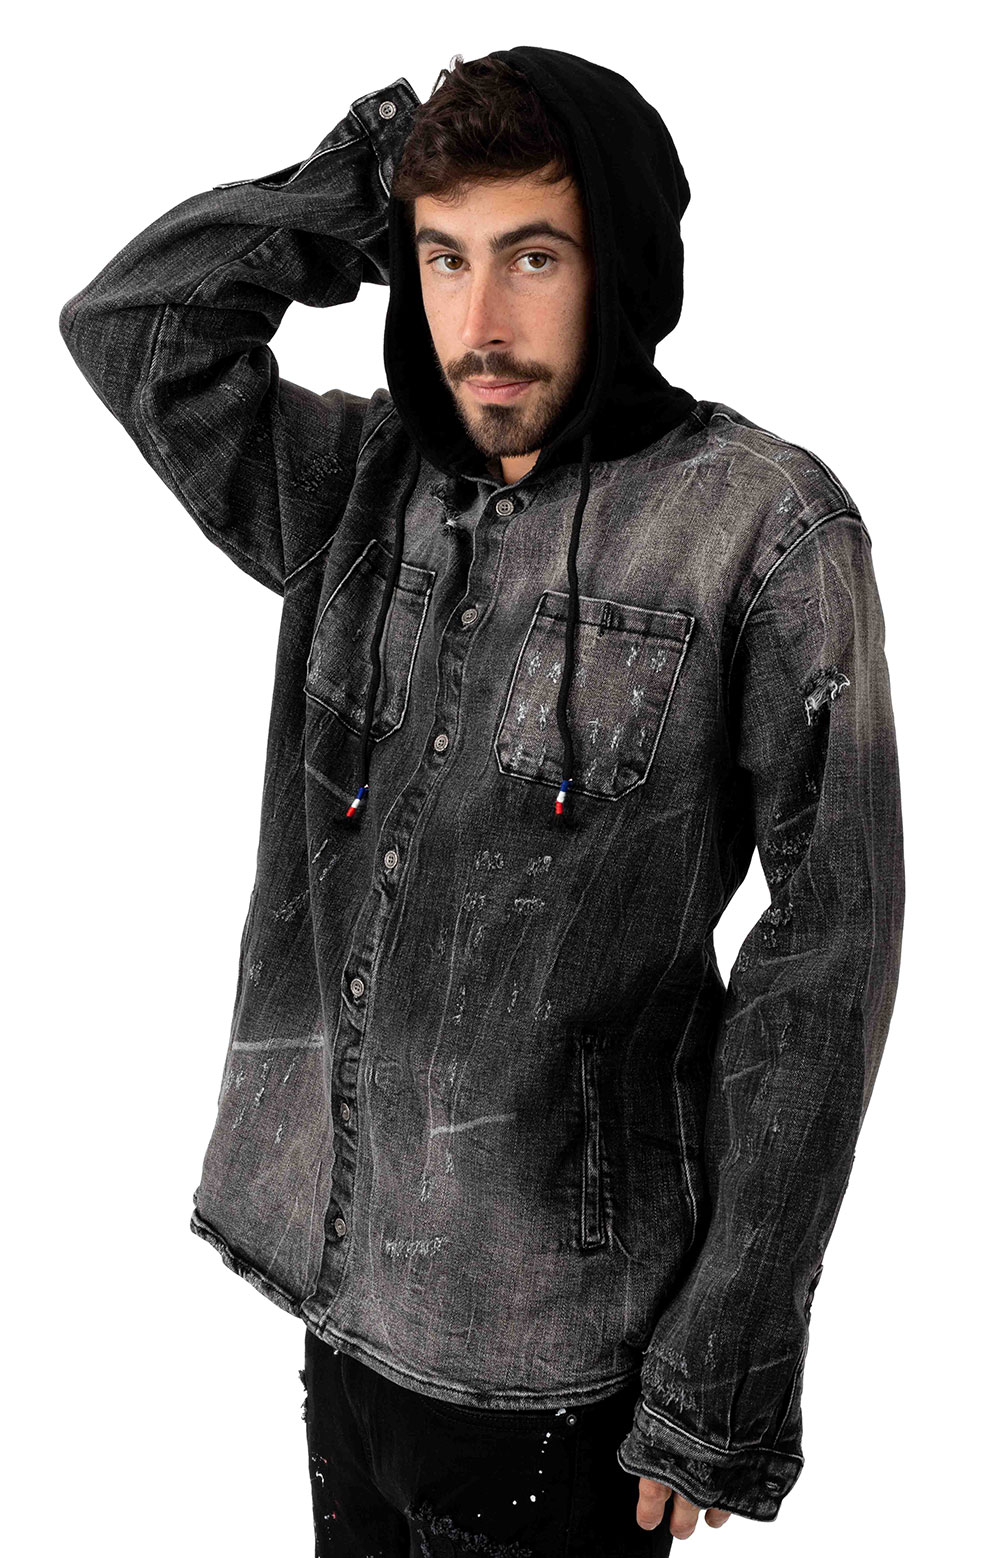 Cryspdenim 77347 Walsh Denim Hooded Shirt - Black